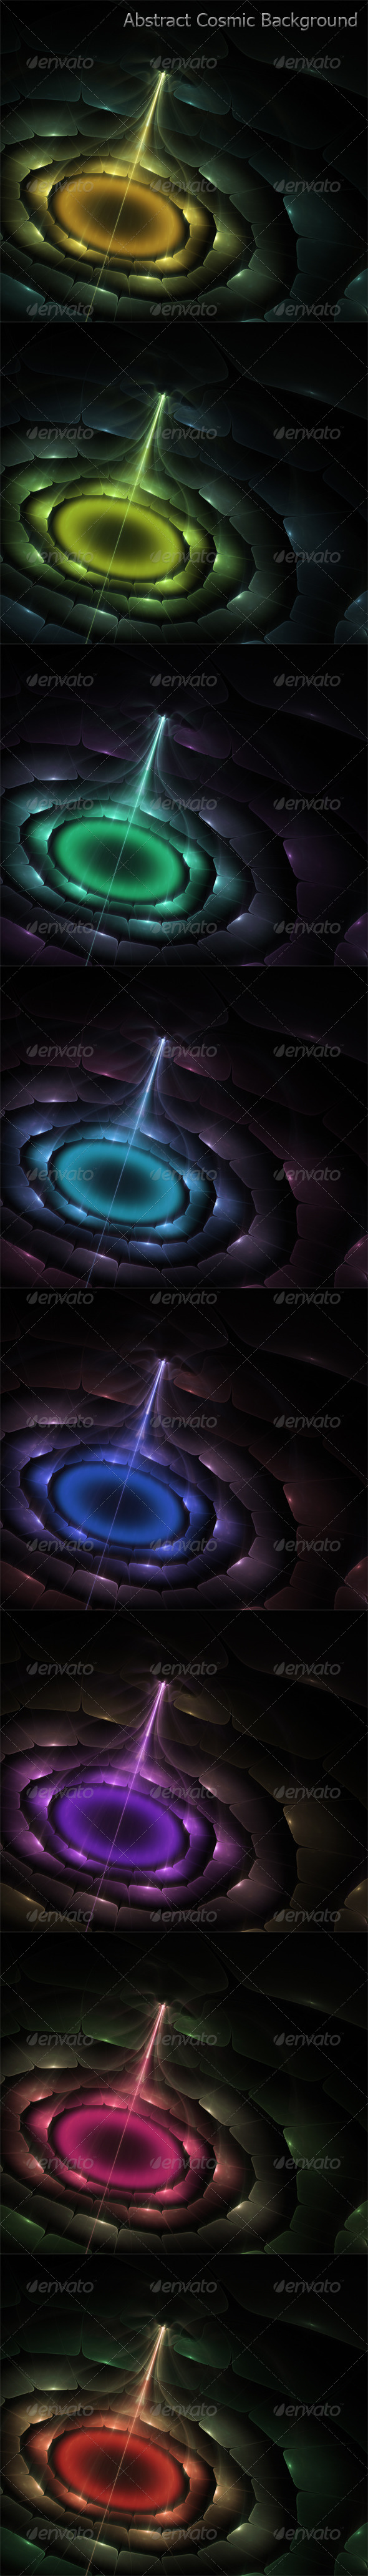 GraphicRiver Abstract Cosmic Background 6376378